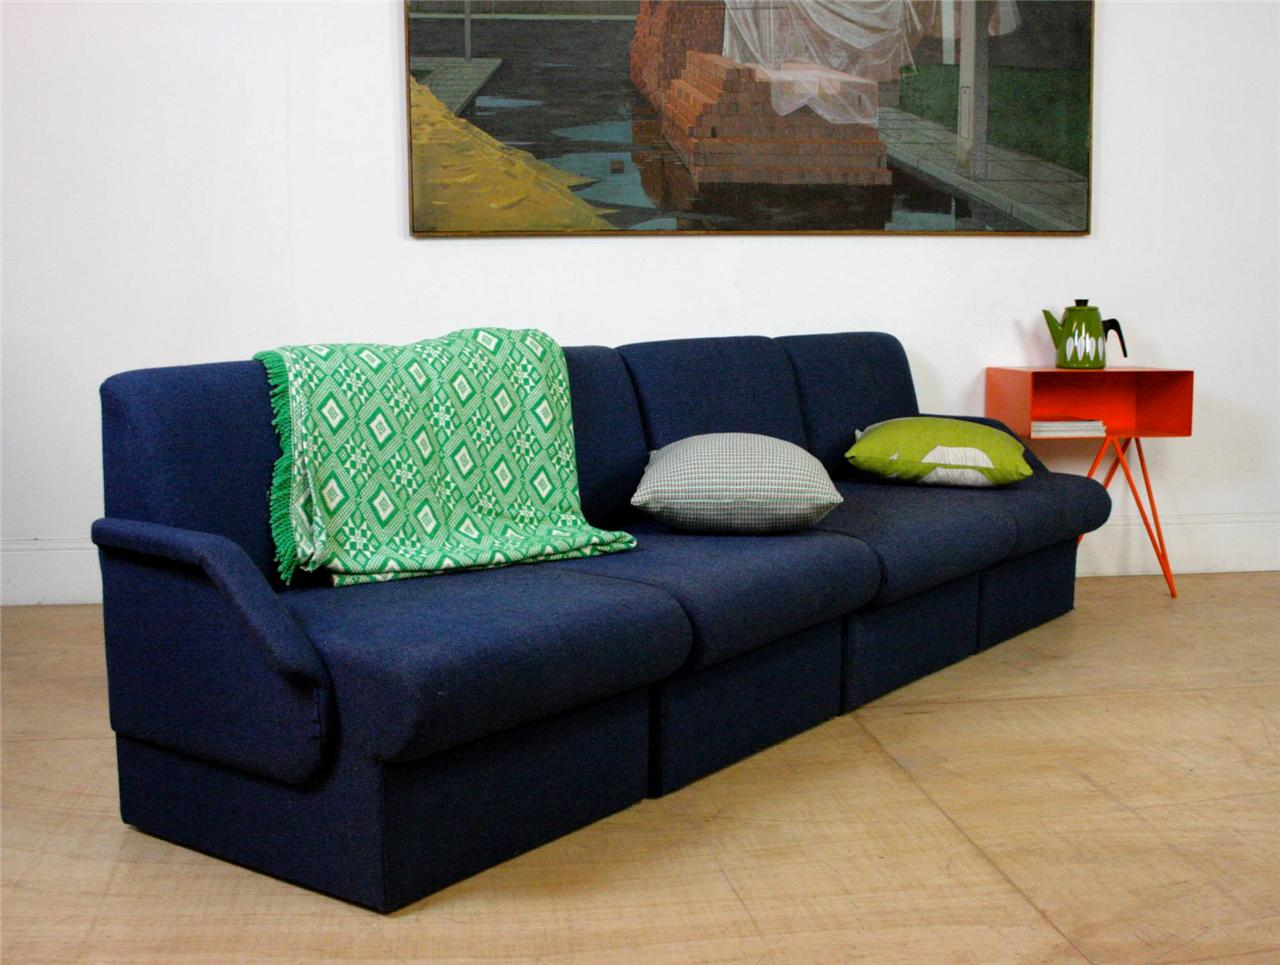 Mid Century Indigo Blue Large Modular Sofa Settee Arm Chairs Retro Vintage